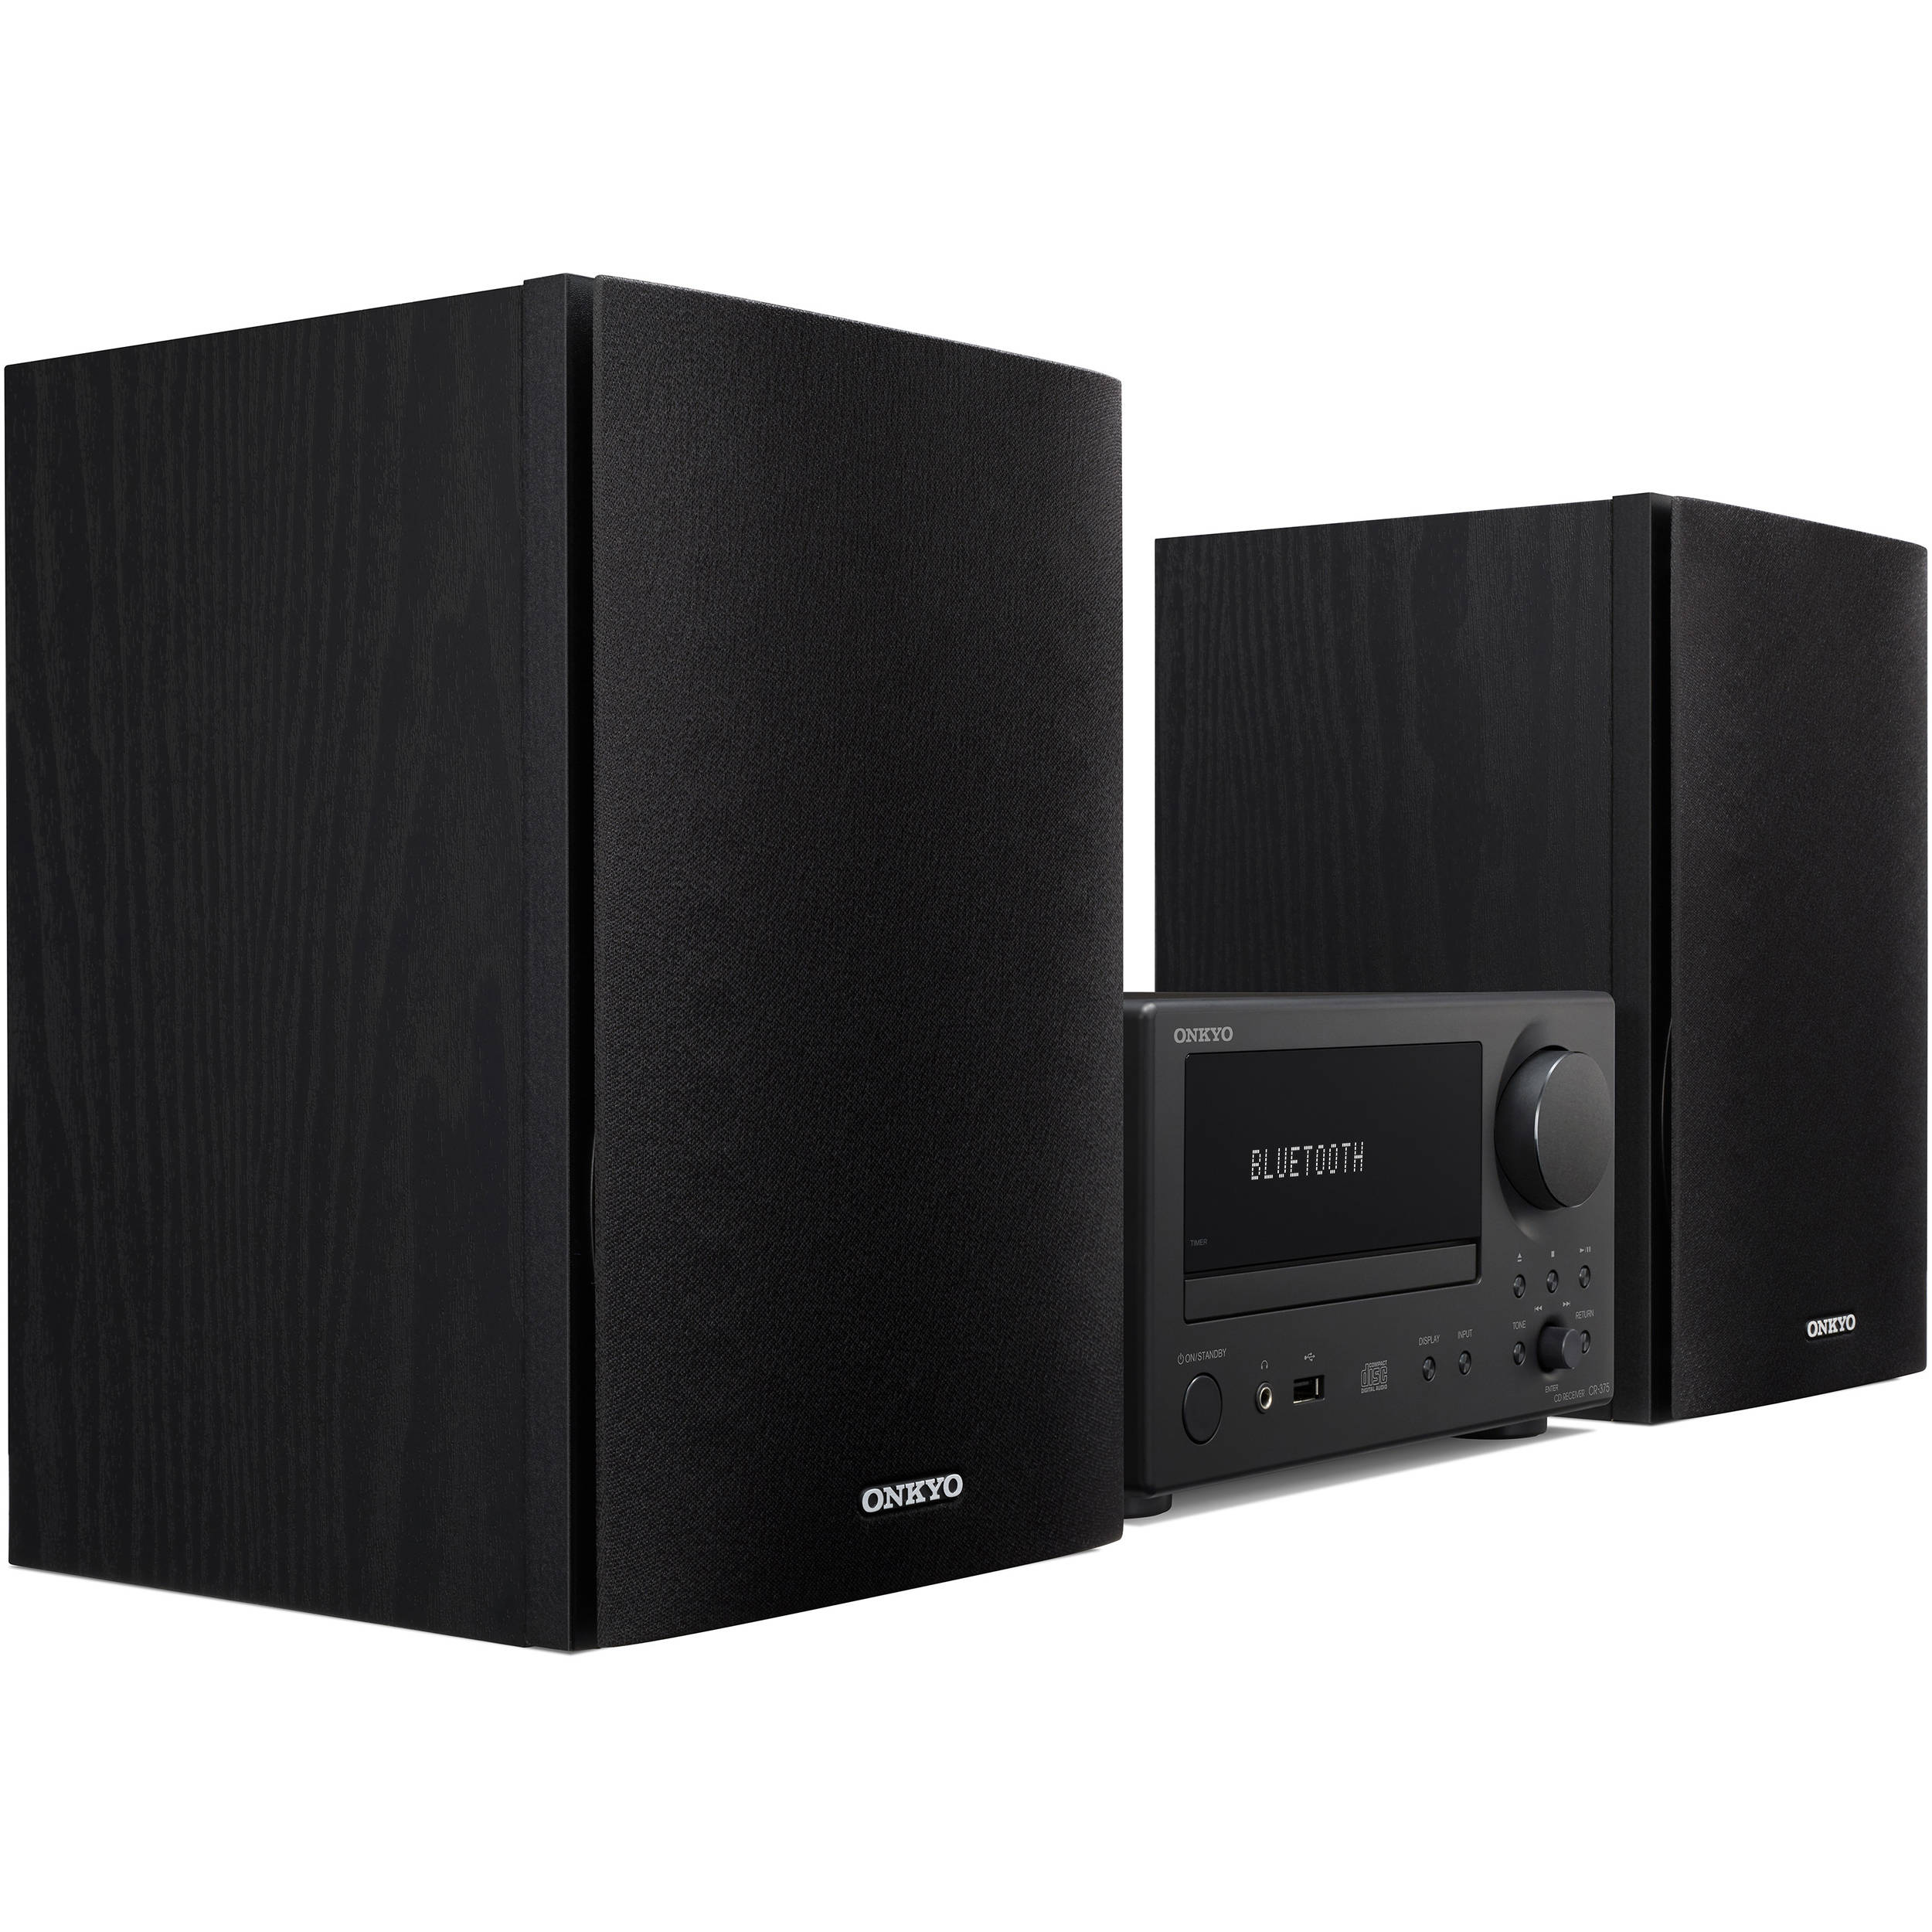 Onkyo CS 375 40W Bluetooth Wireless Music System